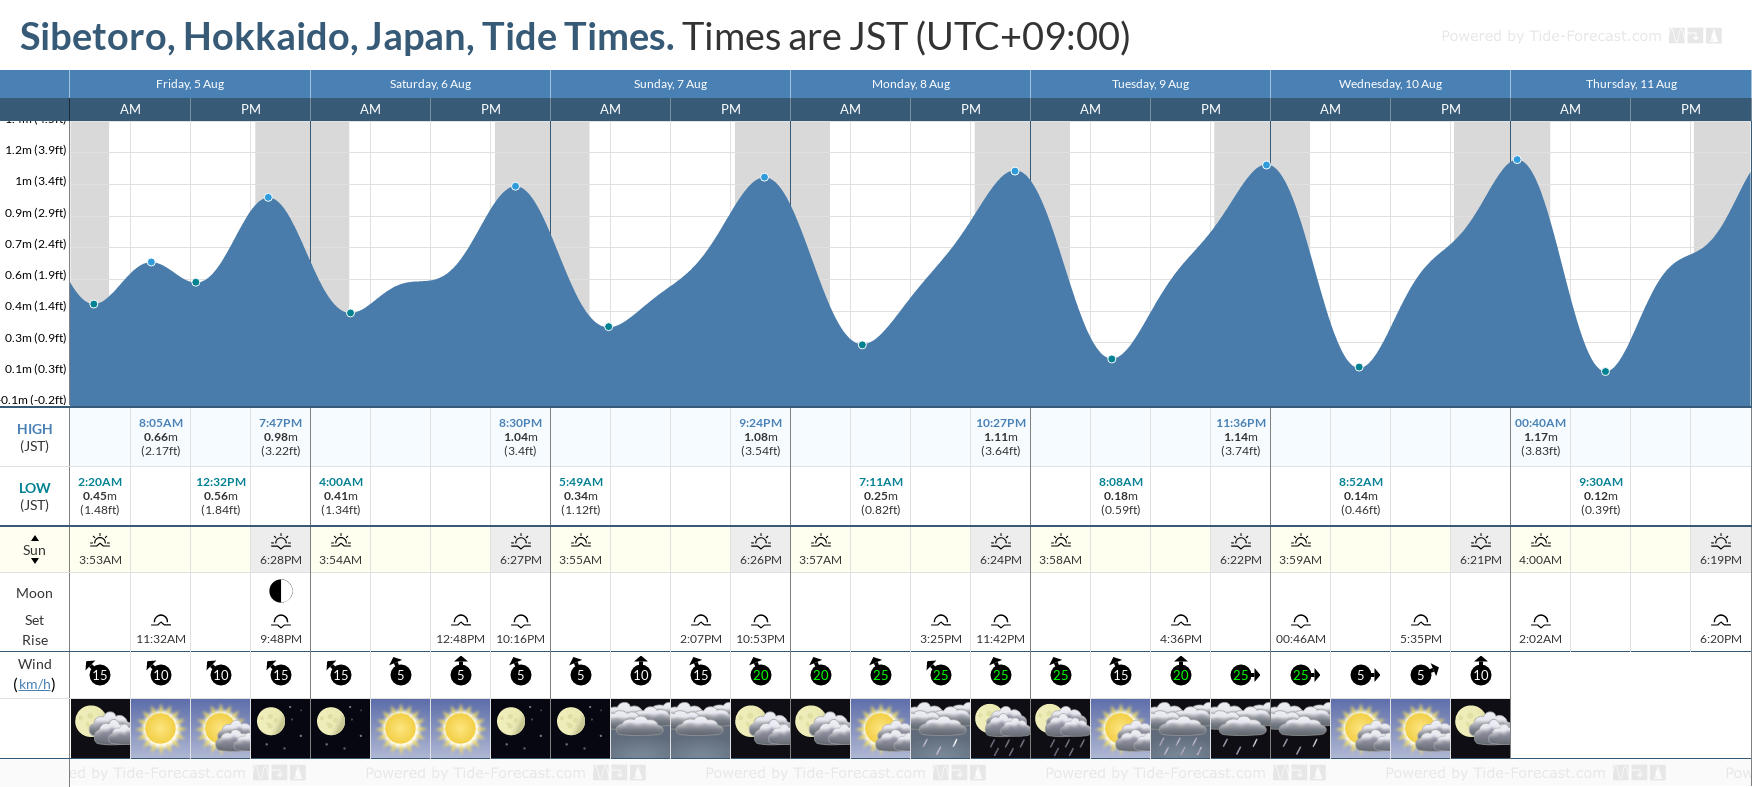 Sibetoro, Hokkaido, Japan Tide Chart including high and low tide tide times for the next 7 days